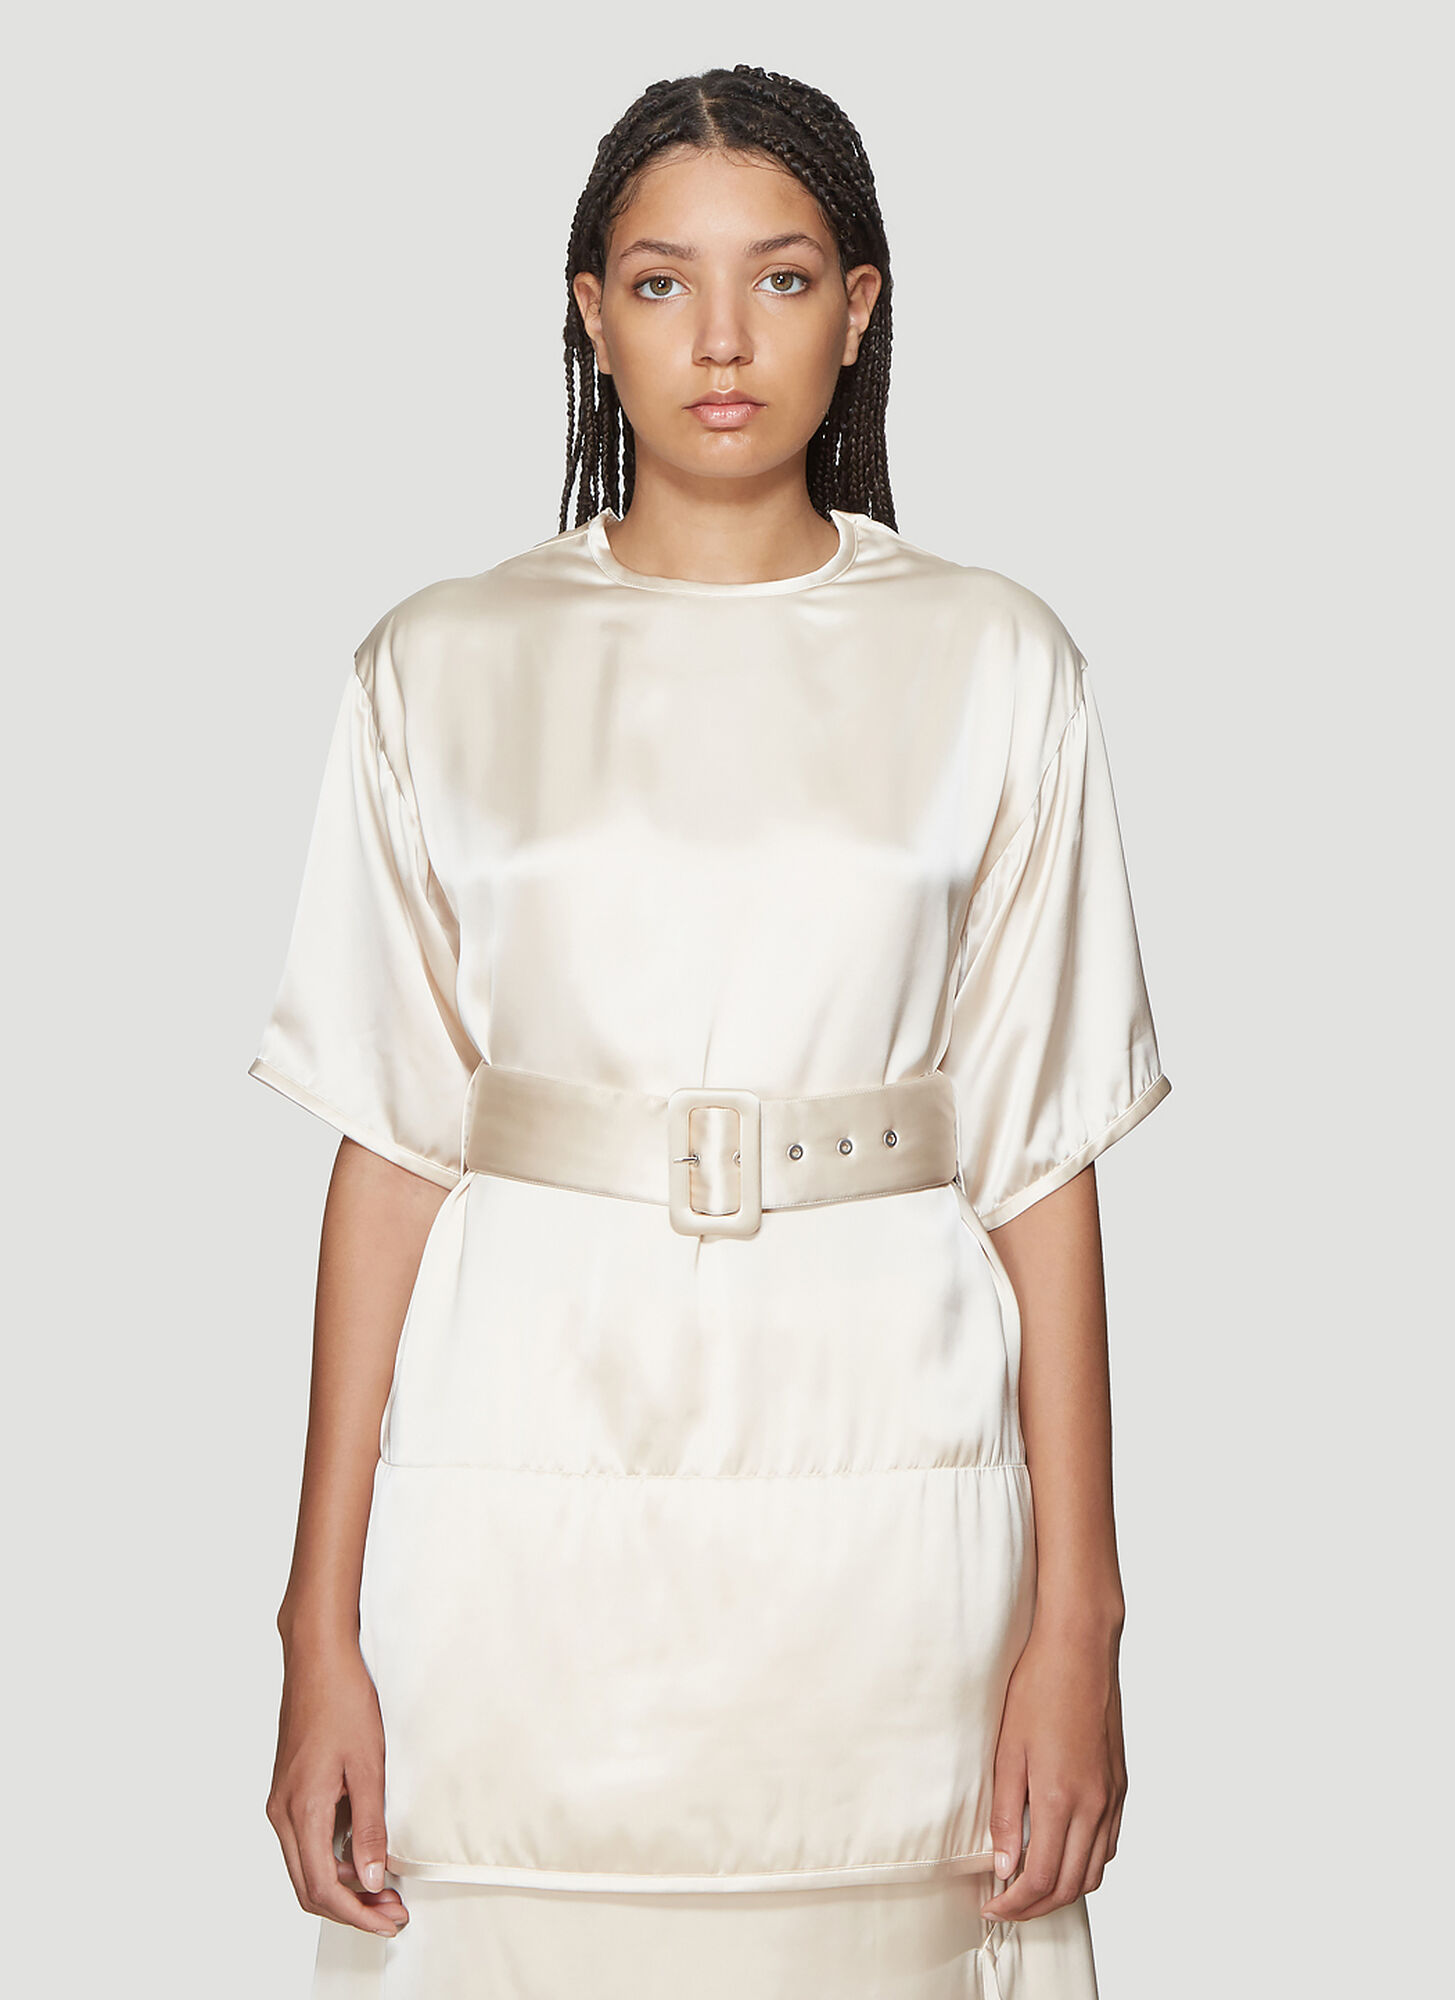 Jil Sander Loto Belted Top in White